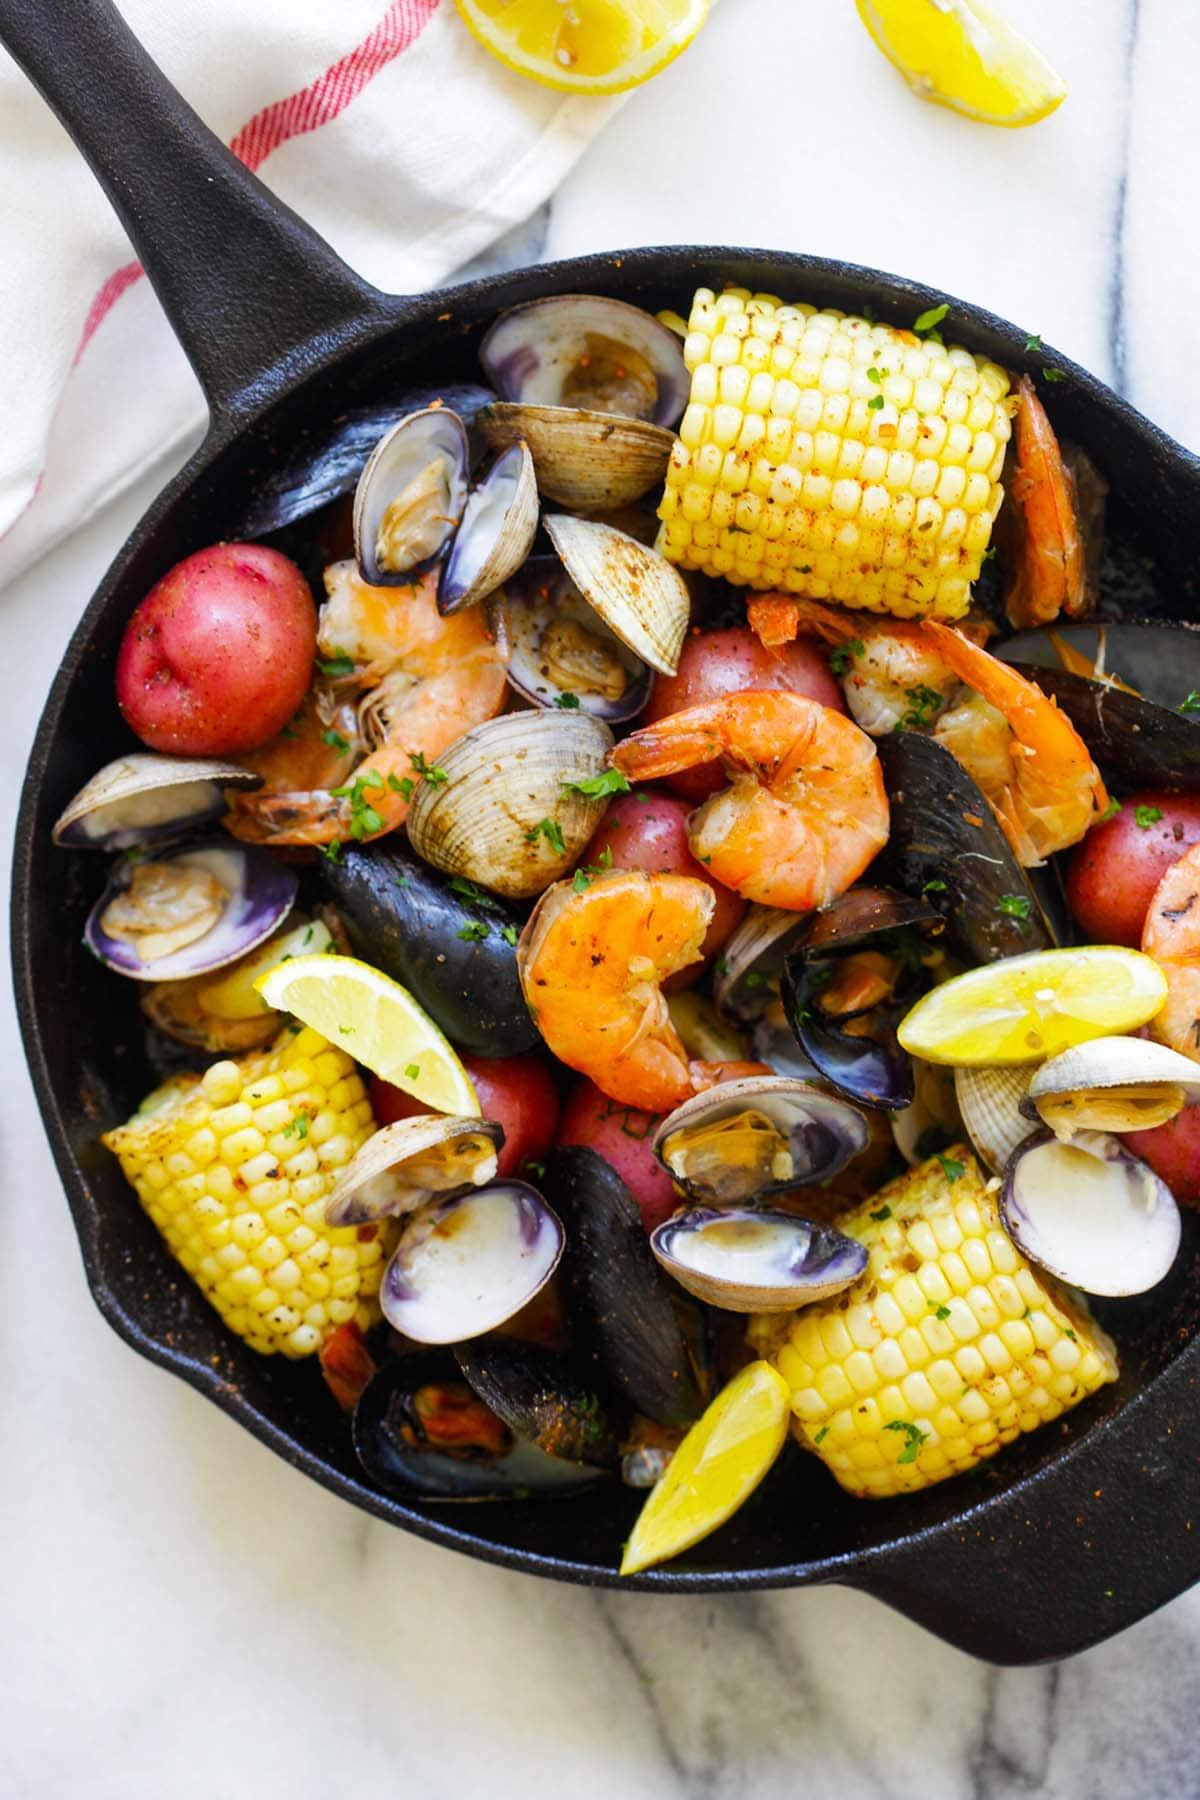 Clambake recipe made at home on a stove top.